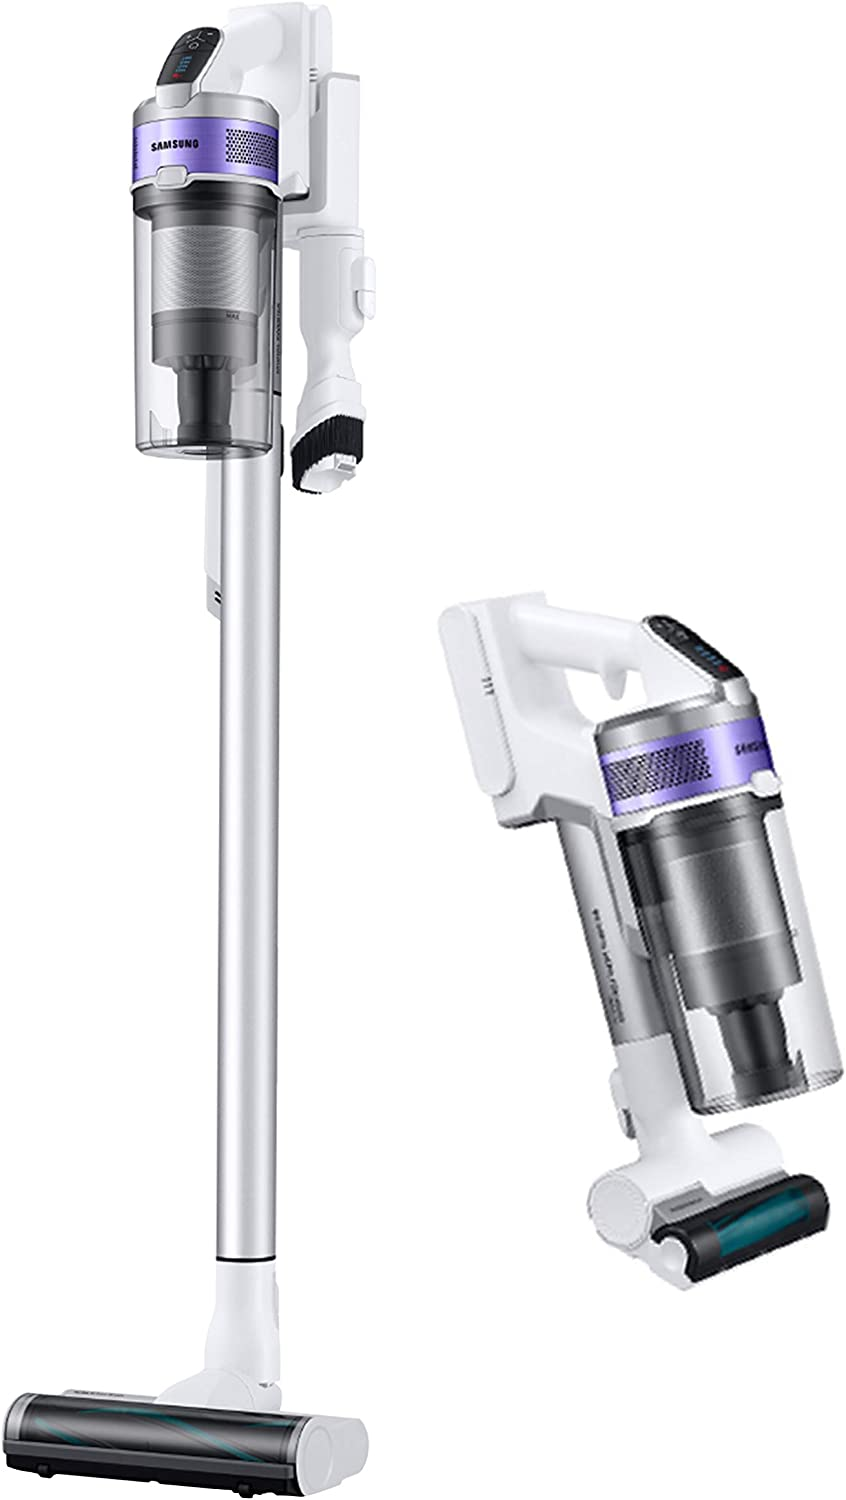 Samsung Jet 70 Pet Stick Lightweight Cleaner with Removable Long Lasting Battery and 150 Air Watt Suction Power Cordless Vacuum with Mini Motorized Tool (VS15T7032R4), Violet